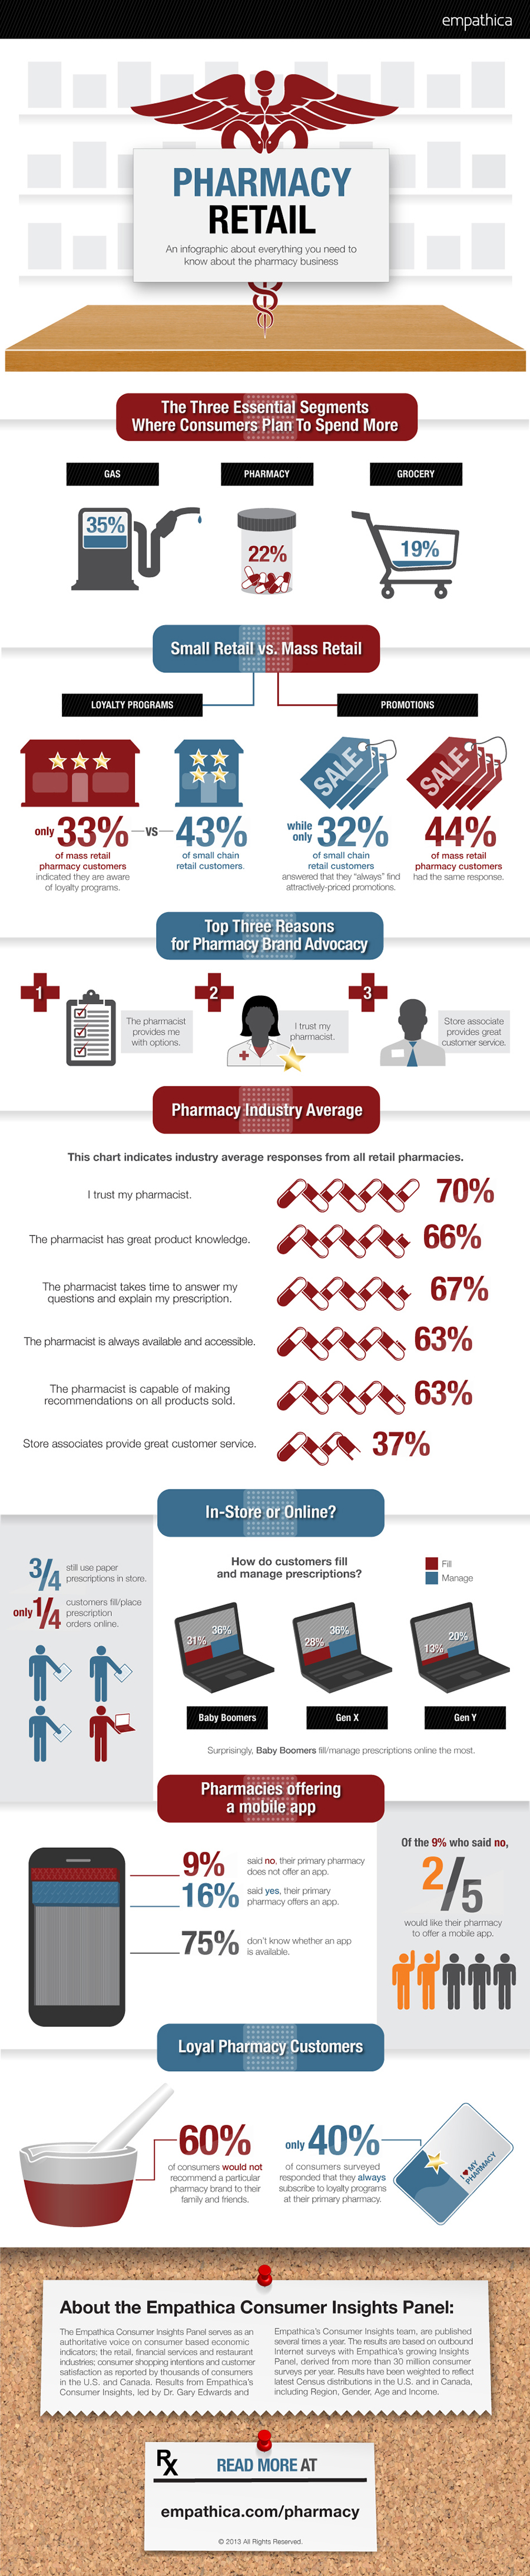 1. U.S. Consumer Perceptions of Pharmacy Retail